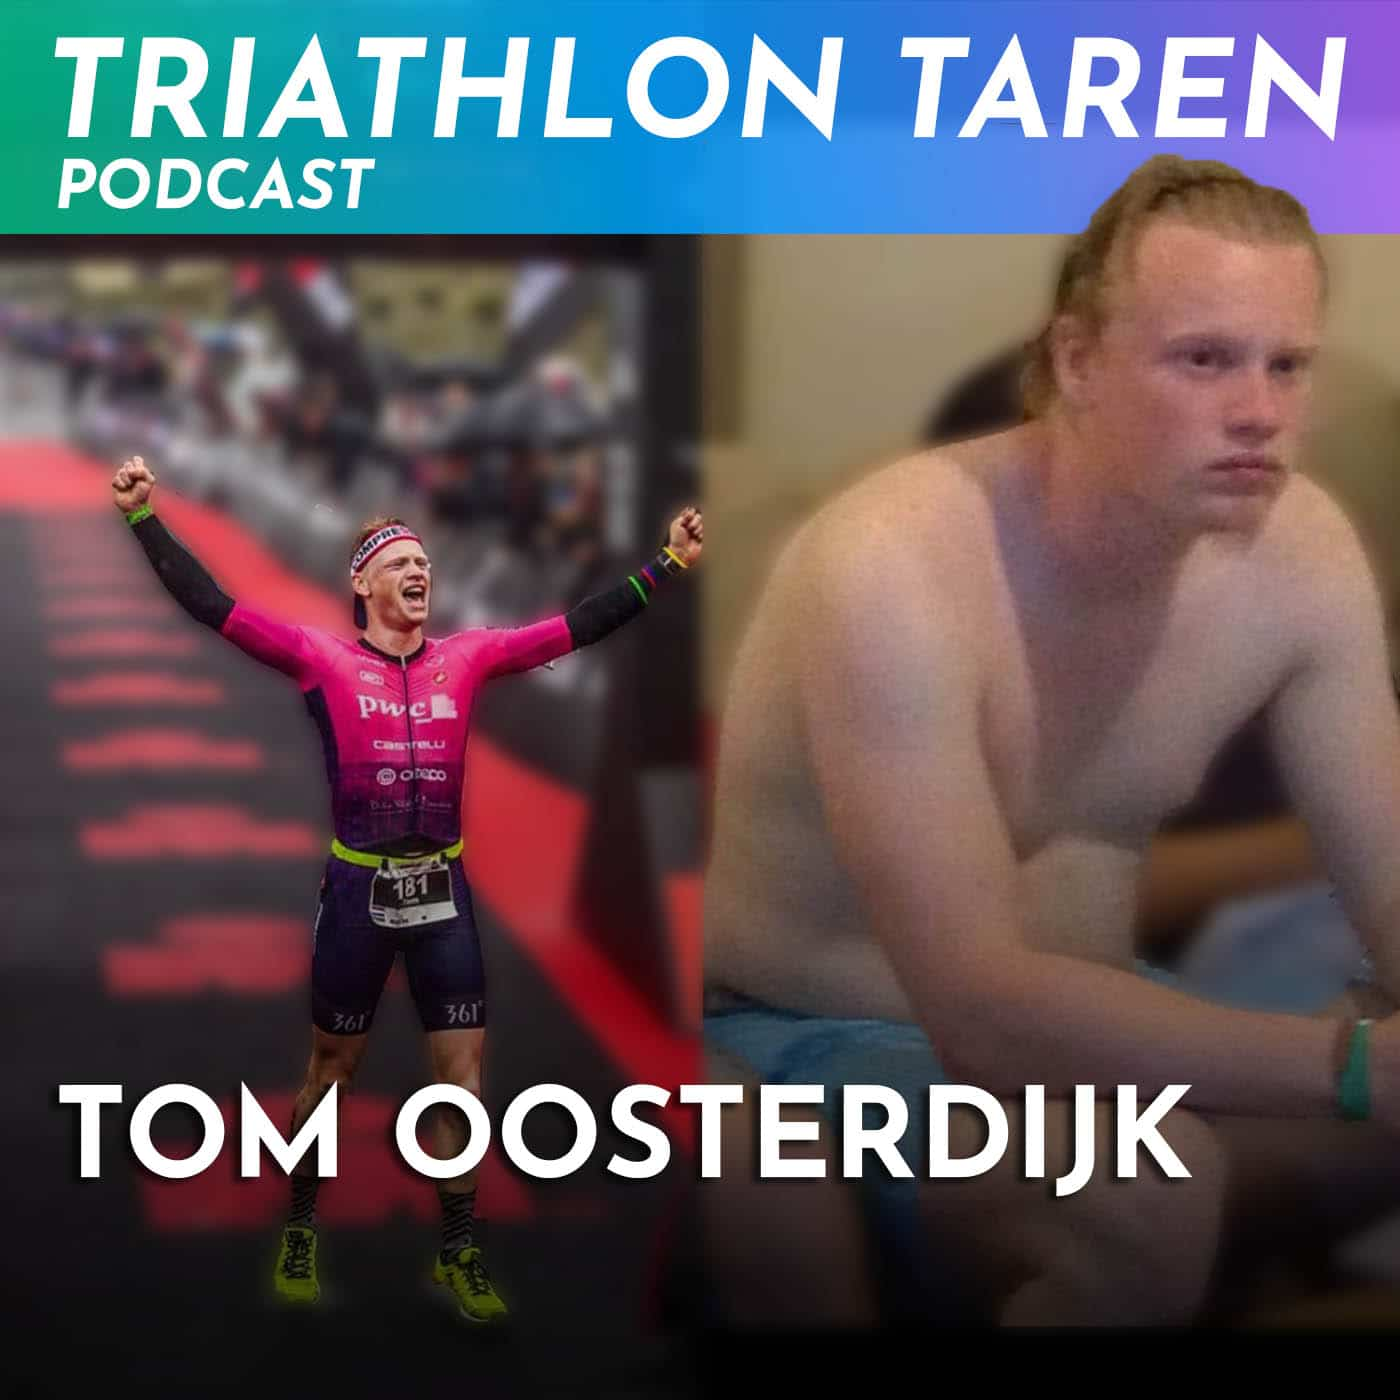 From Fat to Fast in 15 Months with Tom Oosterdijk